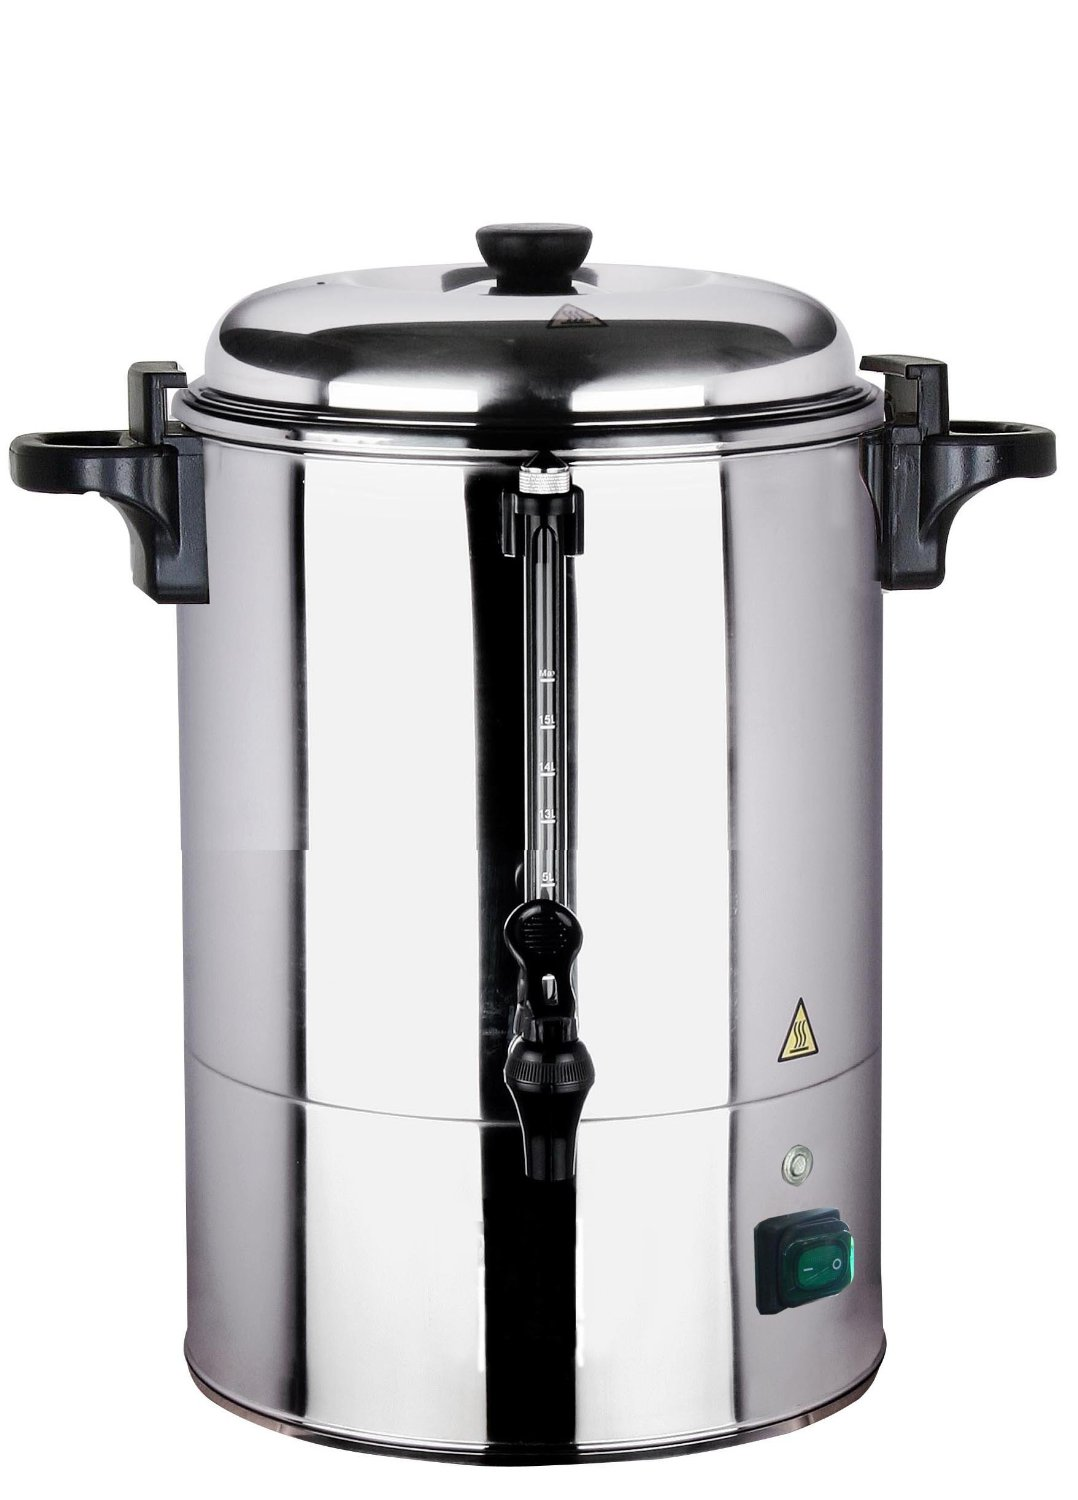 Solo Commercial 30 Cup Insulated Hot Water Boiler and Warmer ...